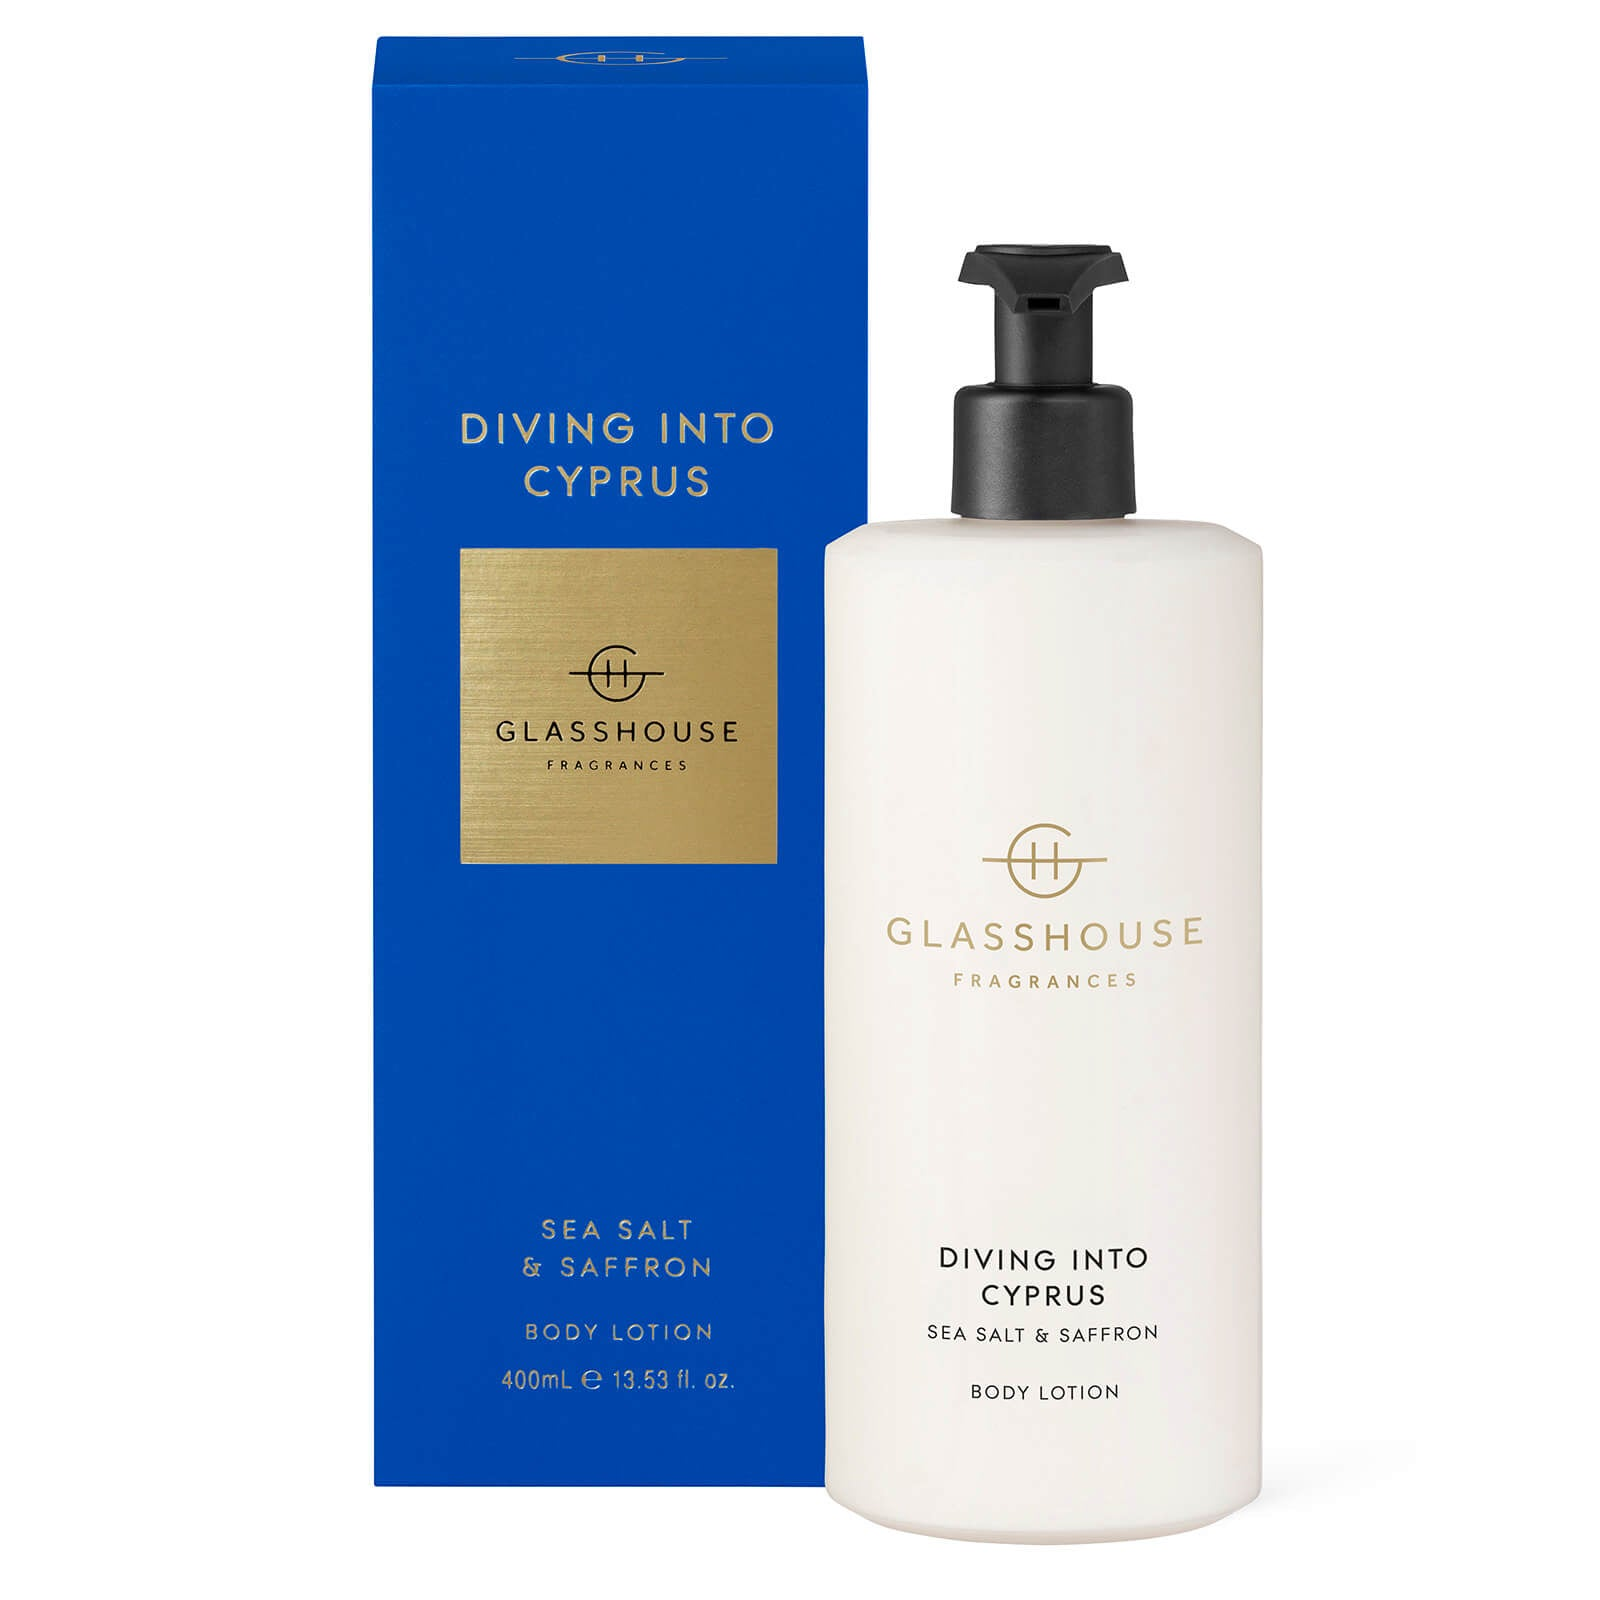 DIVING INTO CYPRUS - BODY LOTION 400ml